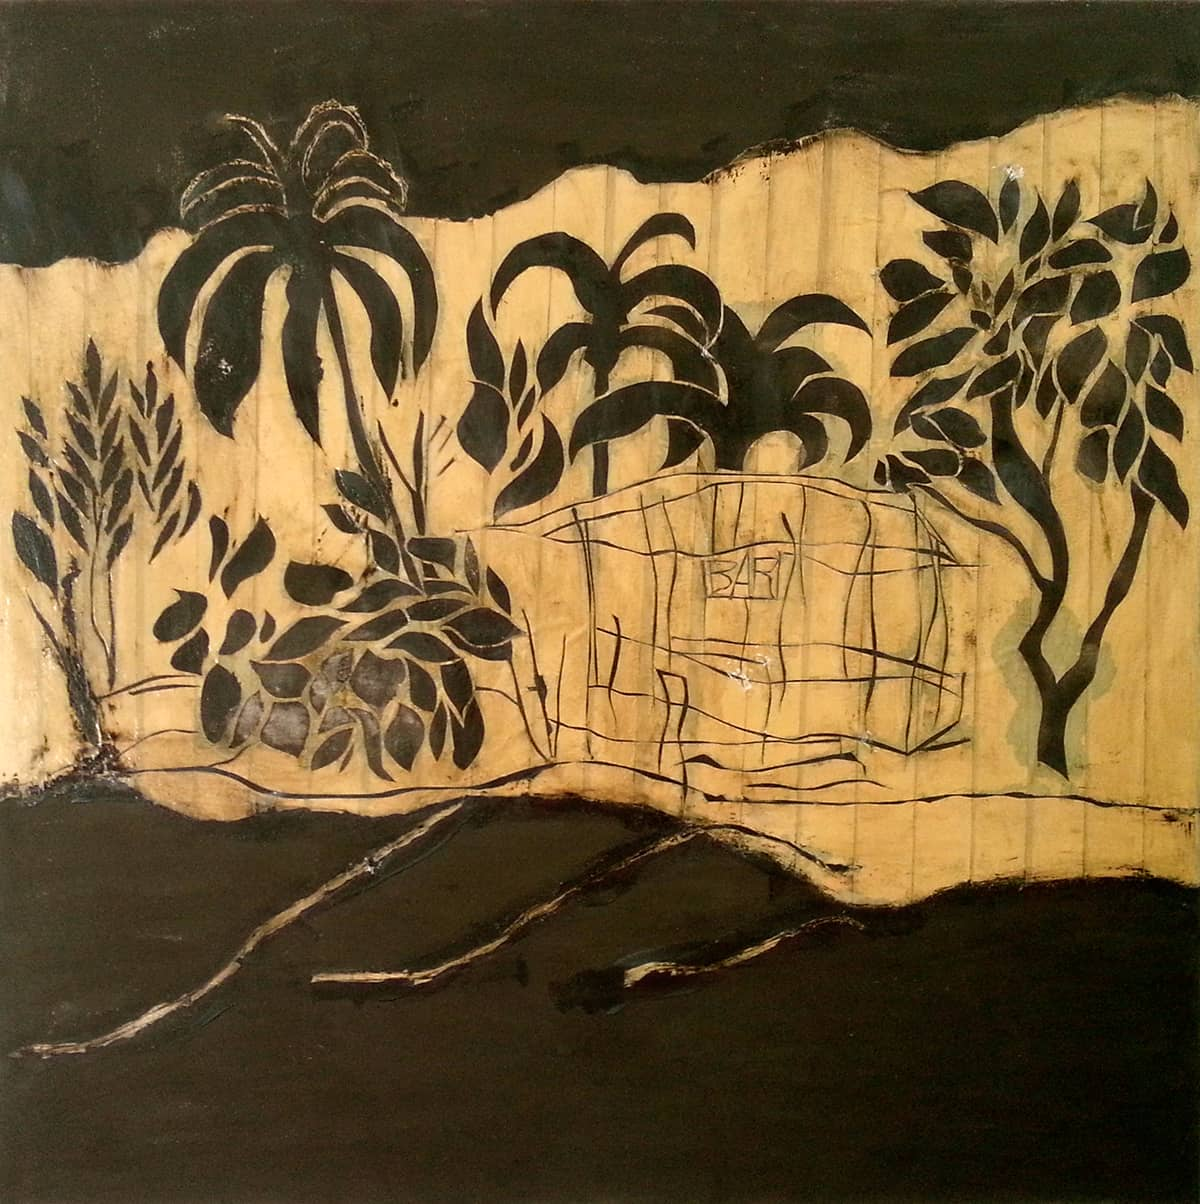 Brewer's Bay No. 4 | British Virgin Islands - 100 x 100 cm mixed media on canvas, 2008